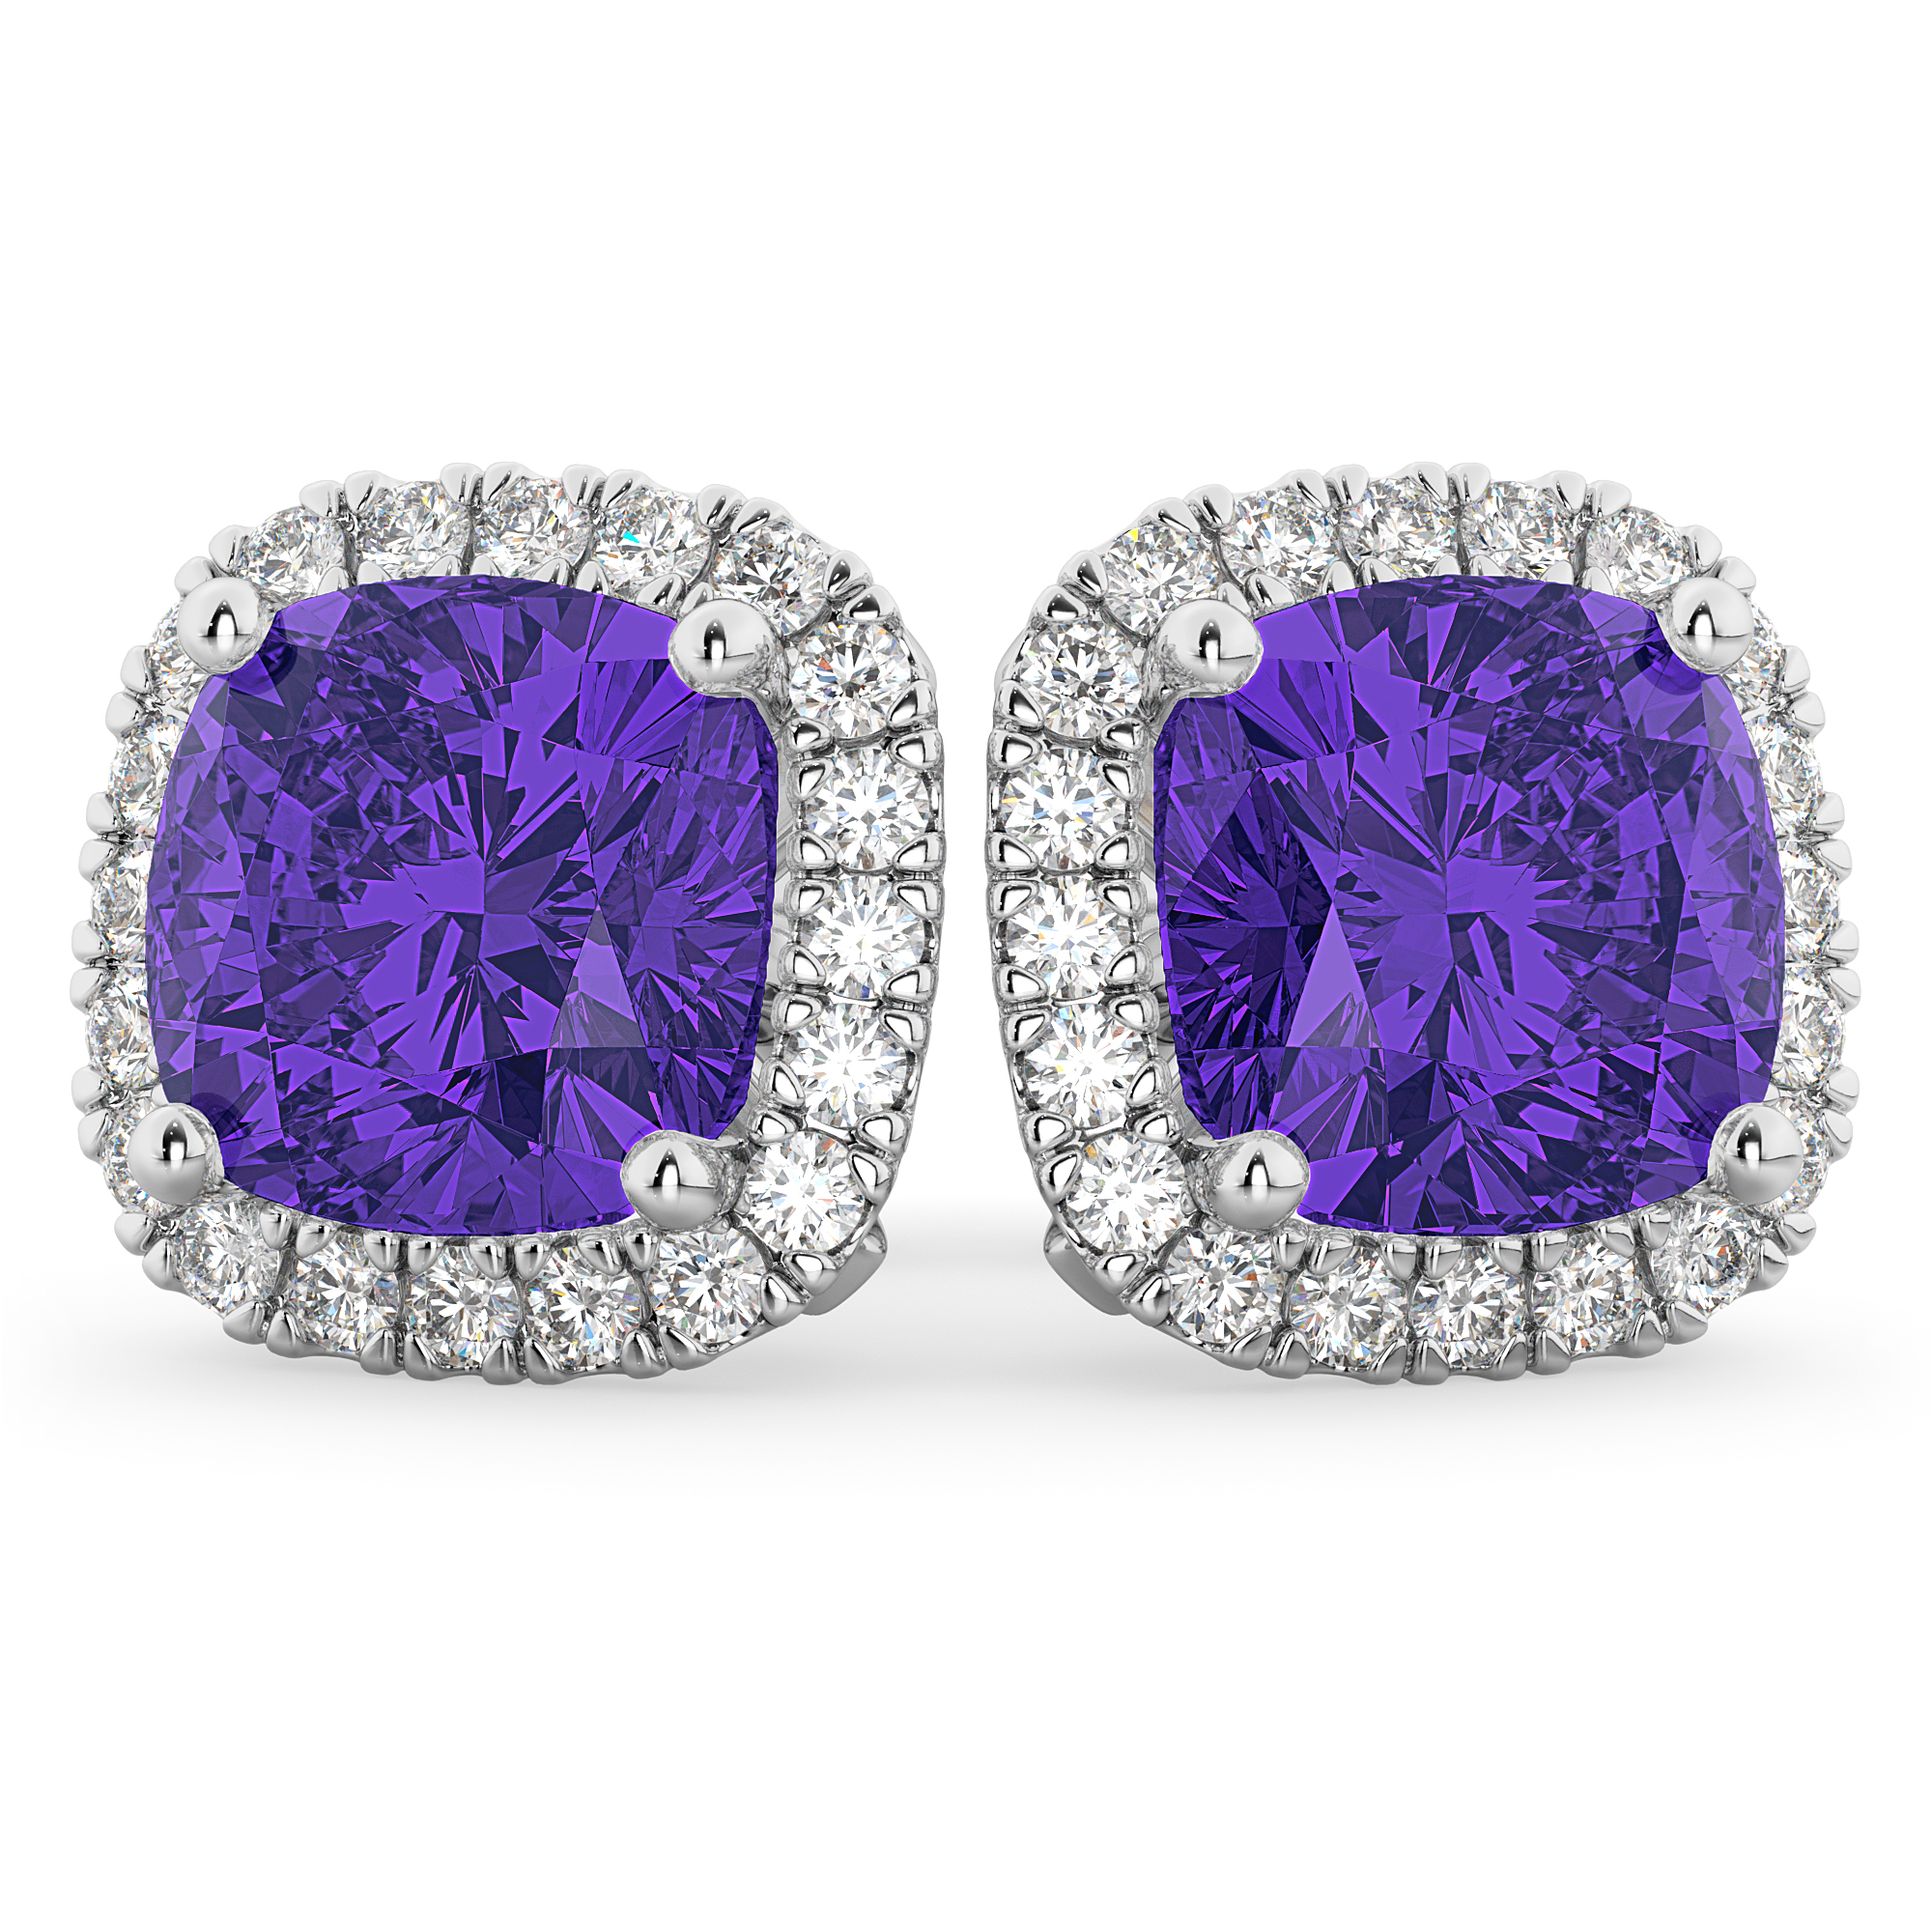 e5e369b8851aca Halo Cushion Tanzanite & Diamond Earrings 14k White Gold 4.04ct - AD4797